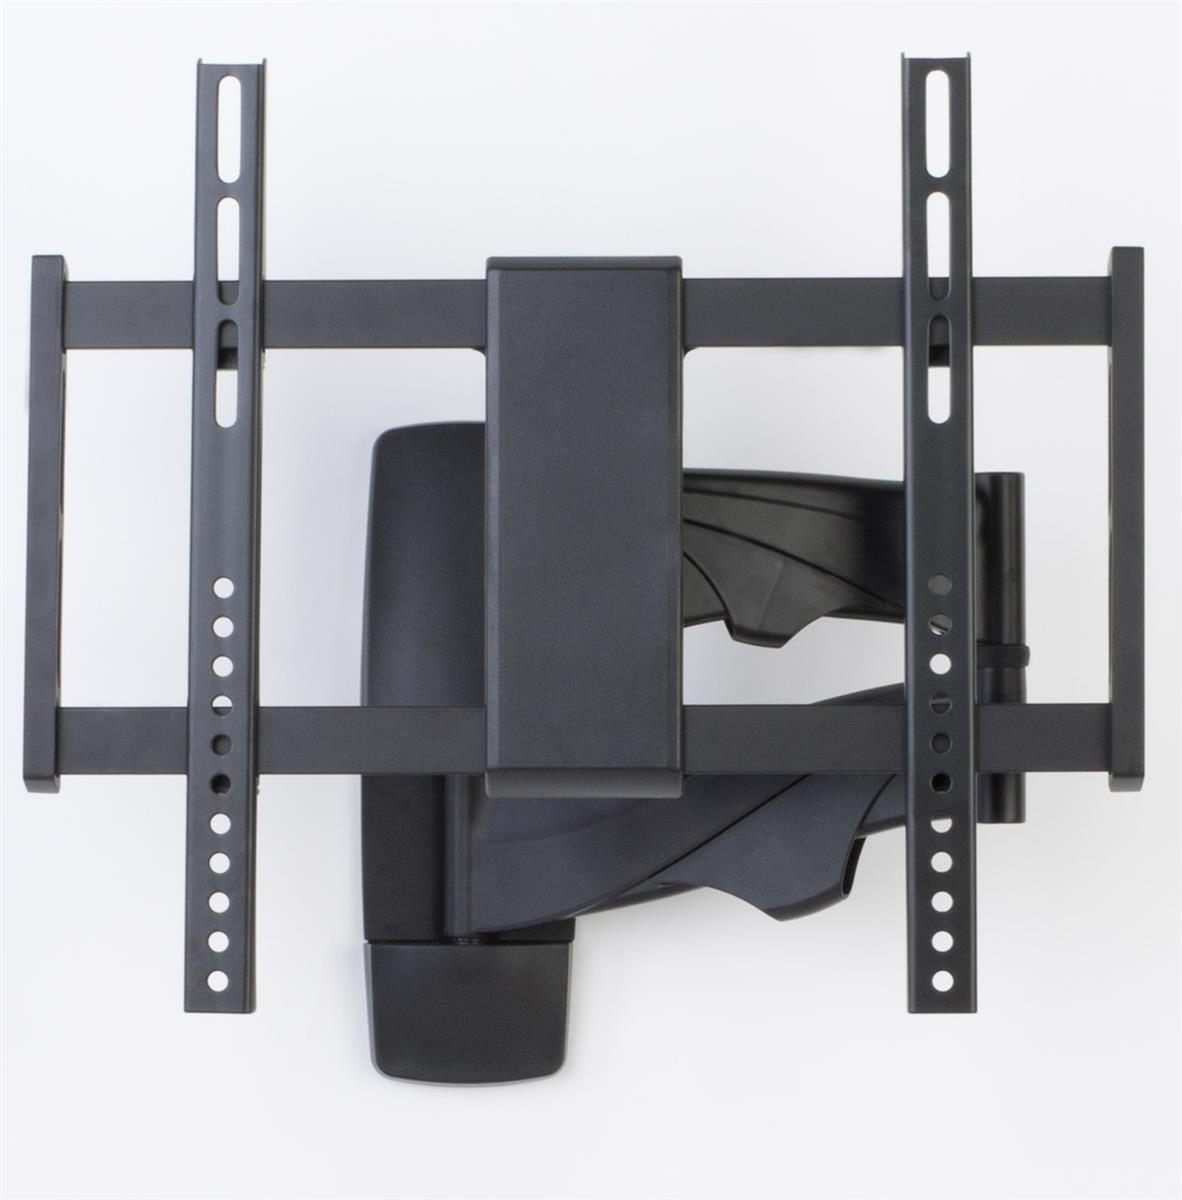 Swivel Wall Mount For Tv For 32 55 Televisions Black